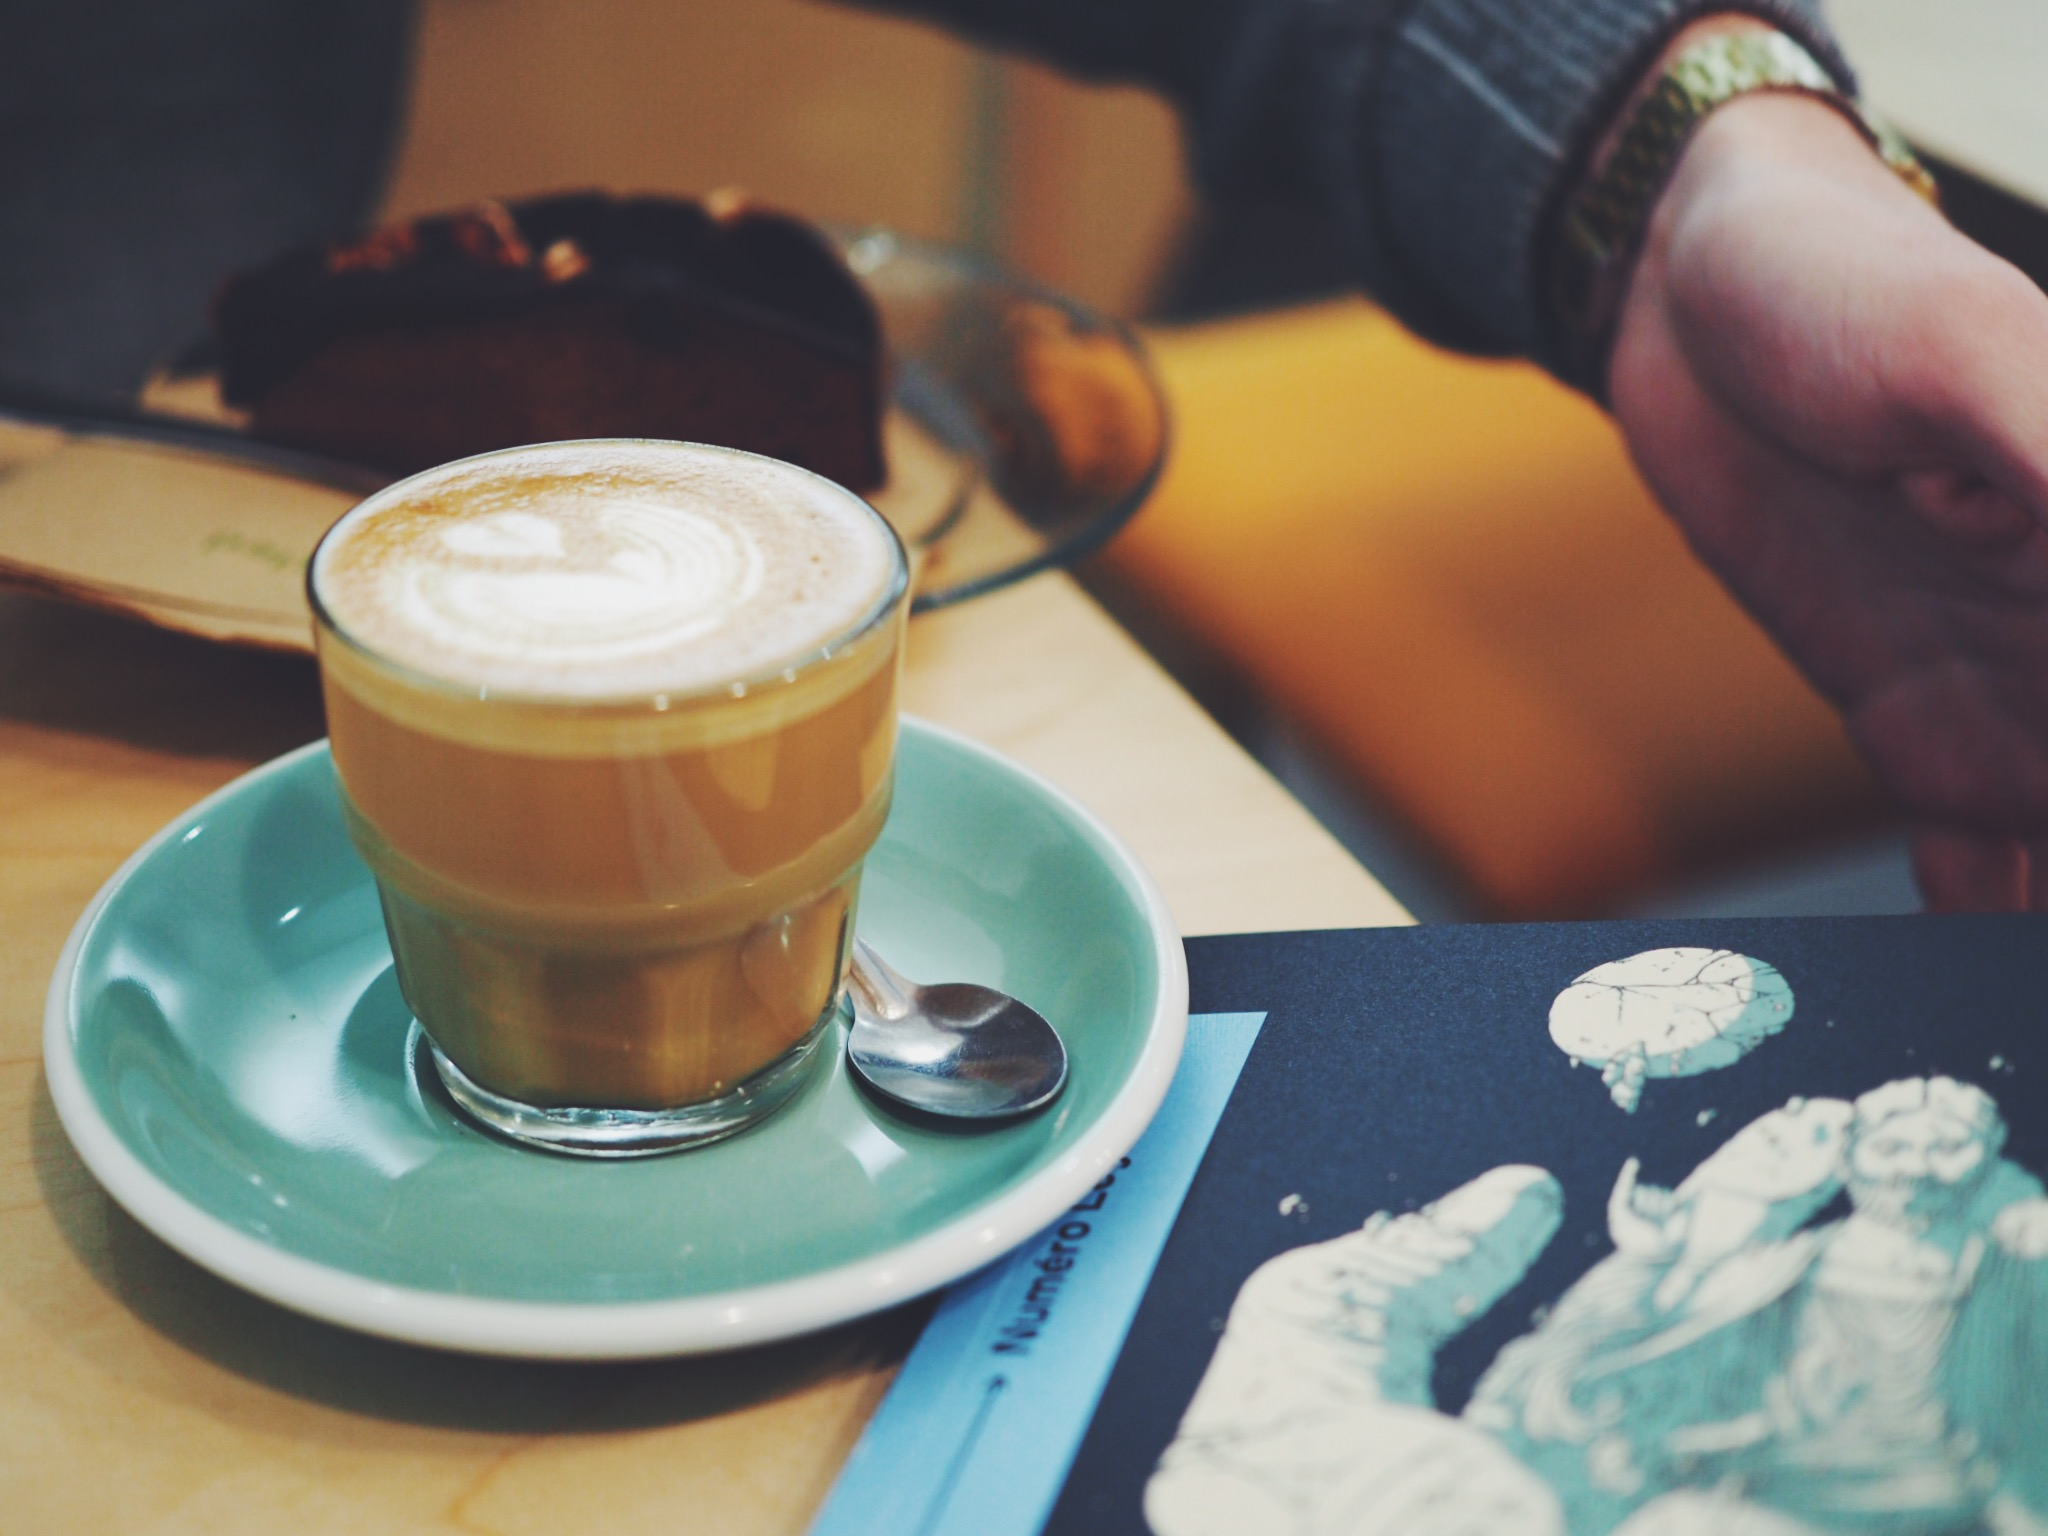 Refuge from the cold can be found in one of Lyon's cosy coffee shops